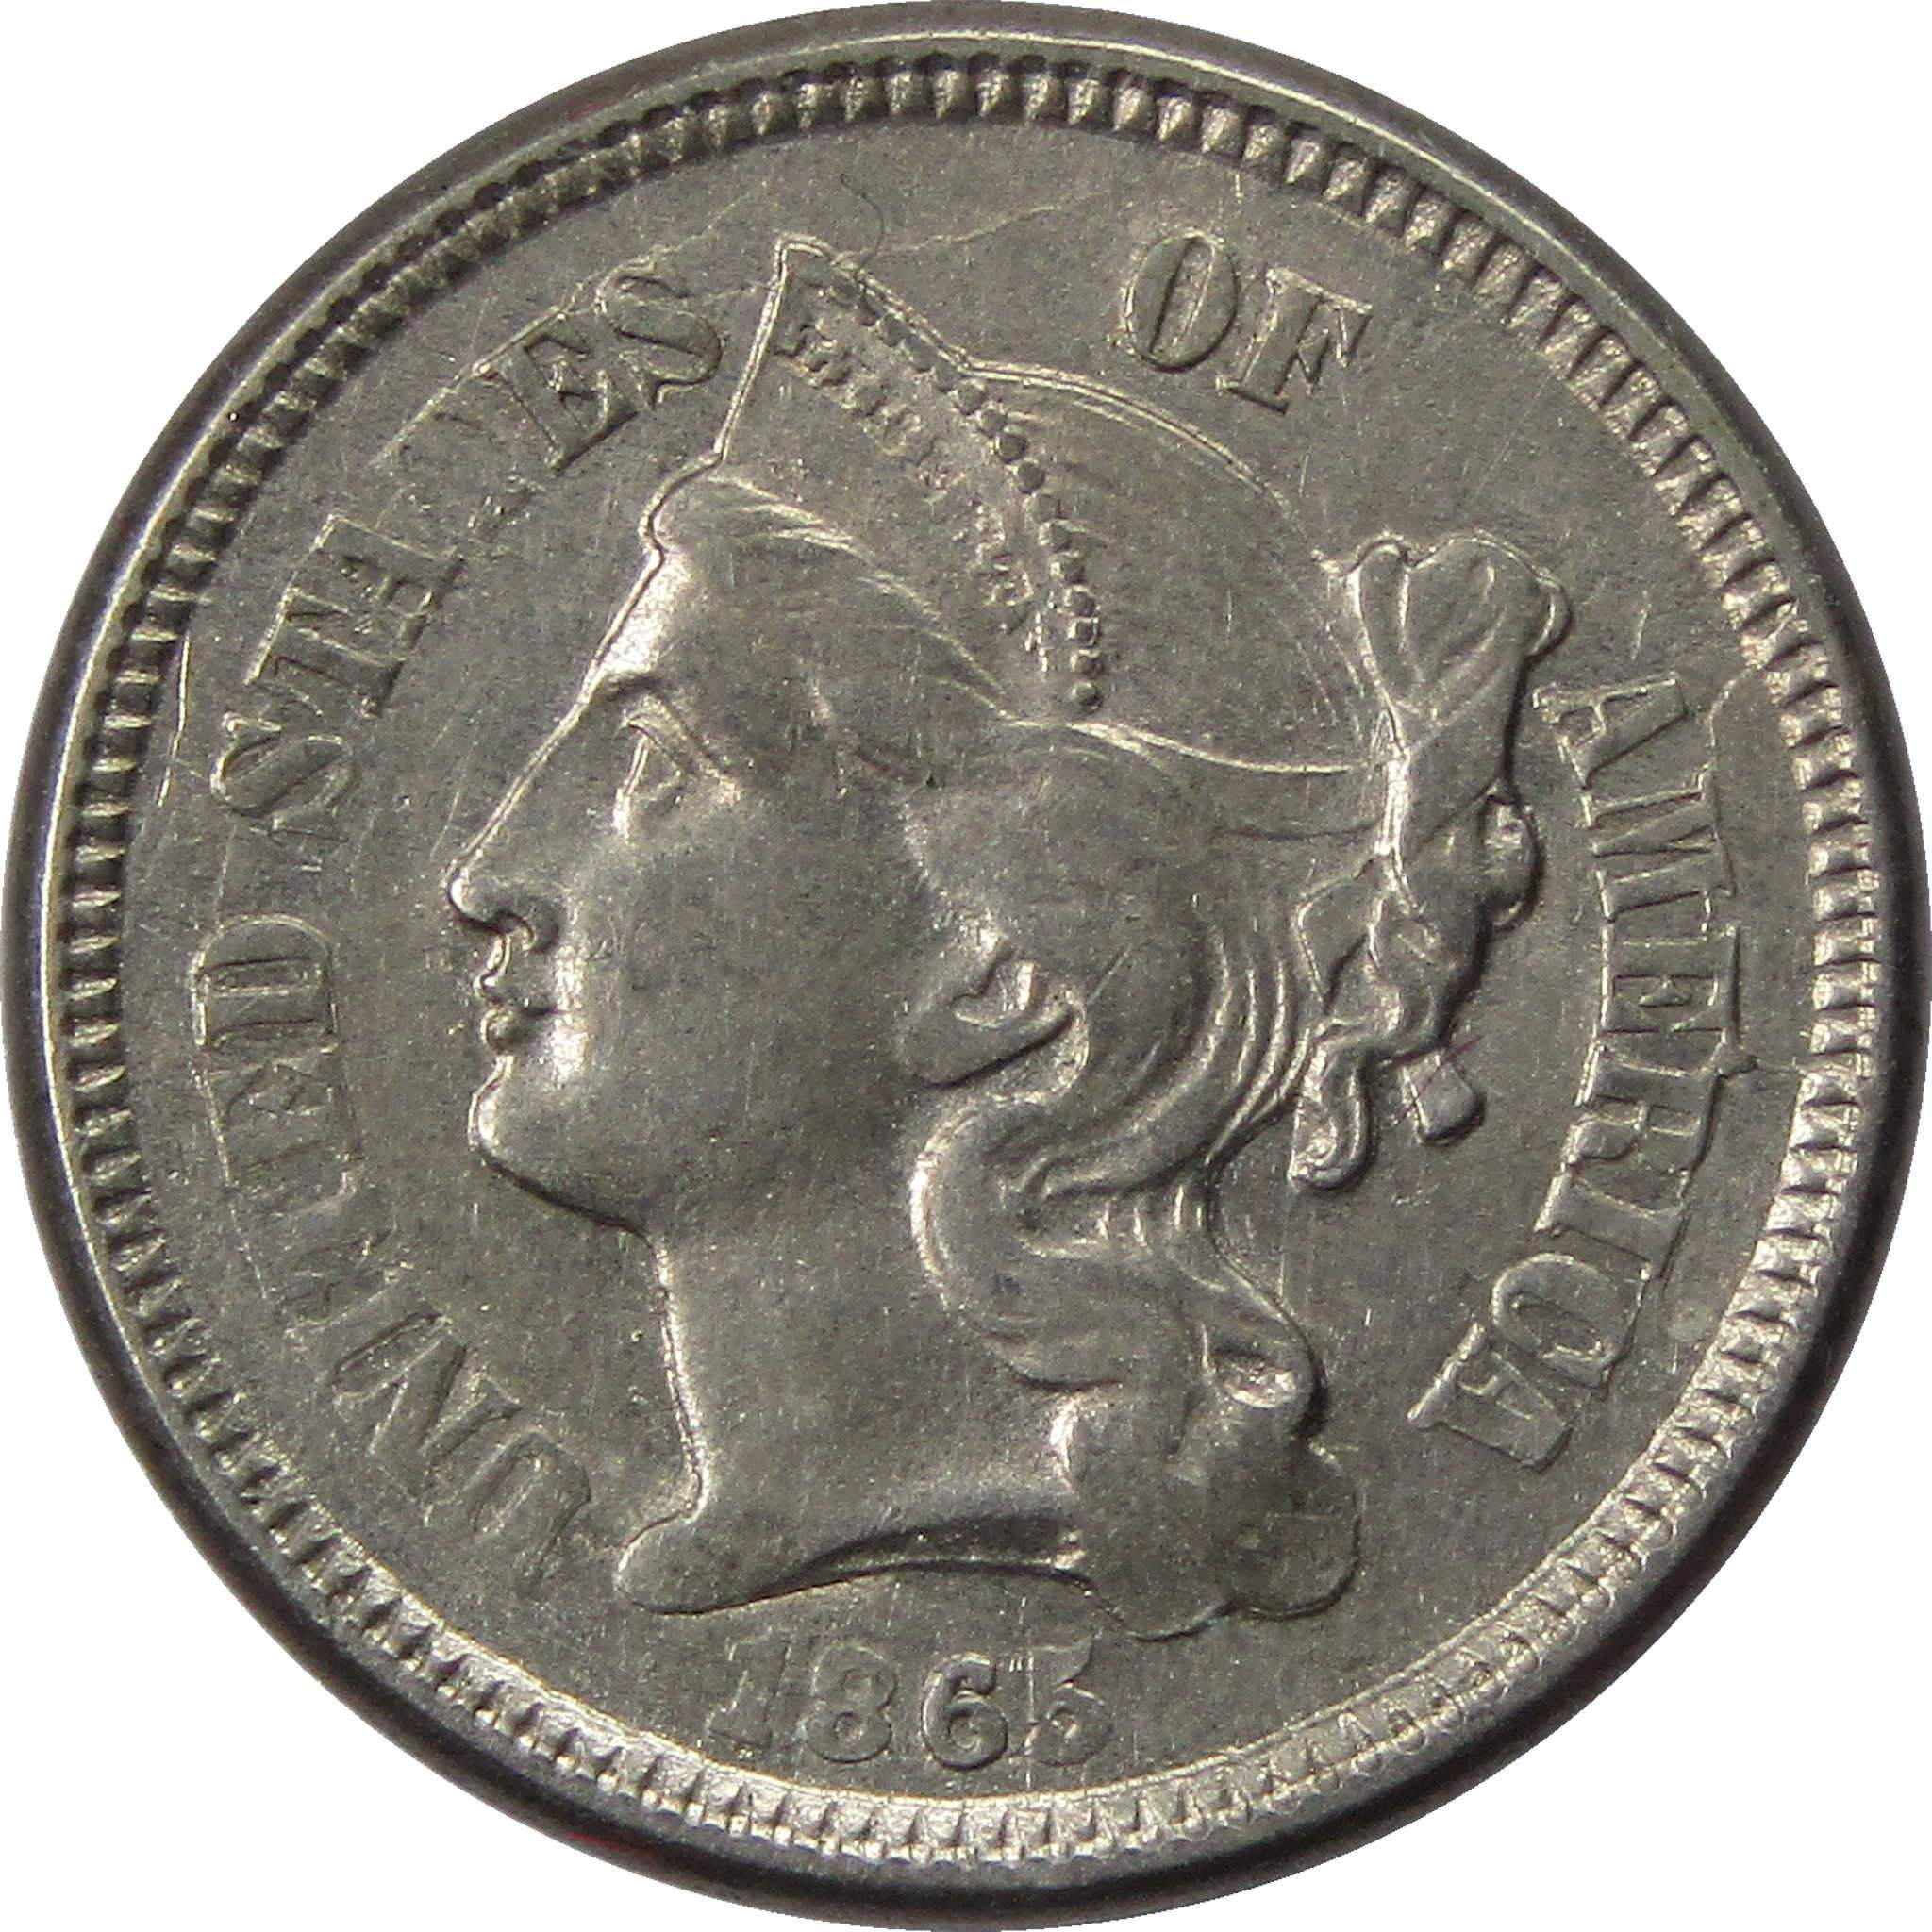 1865 3 cent coin